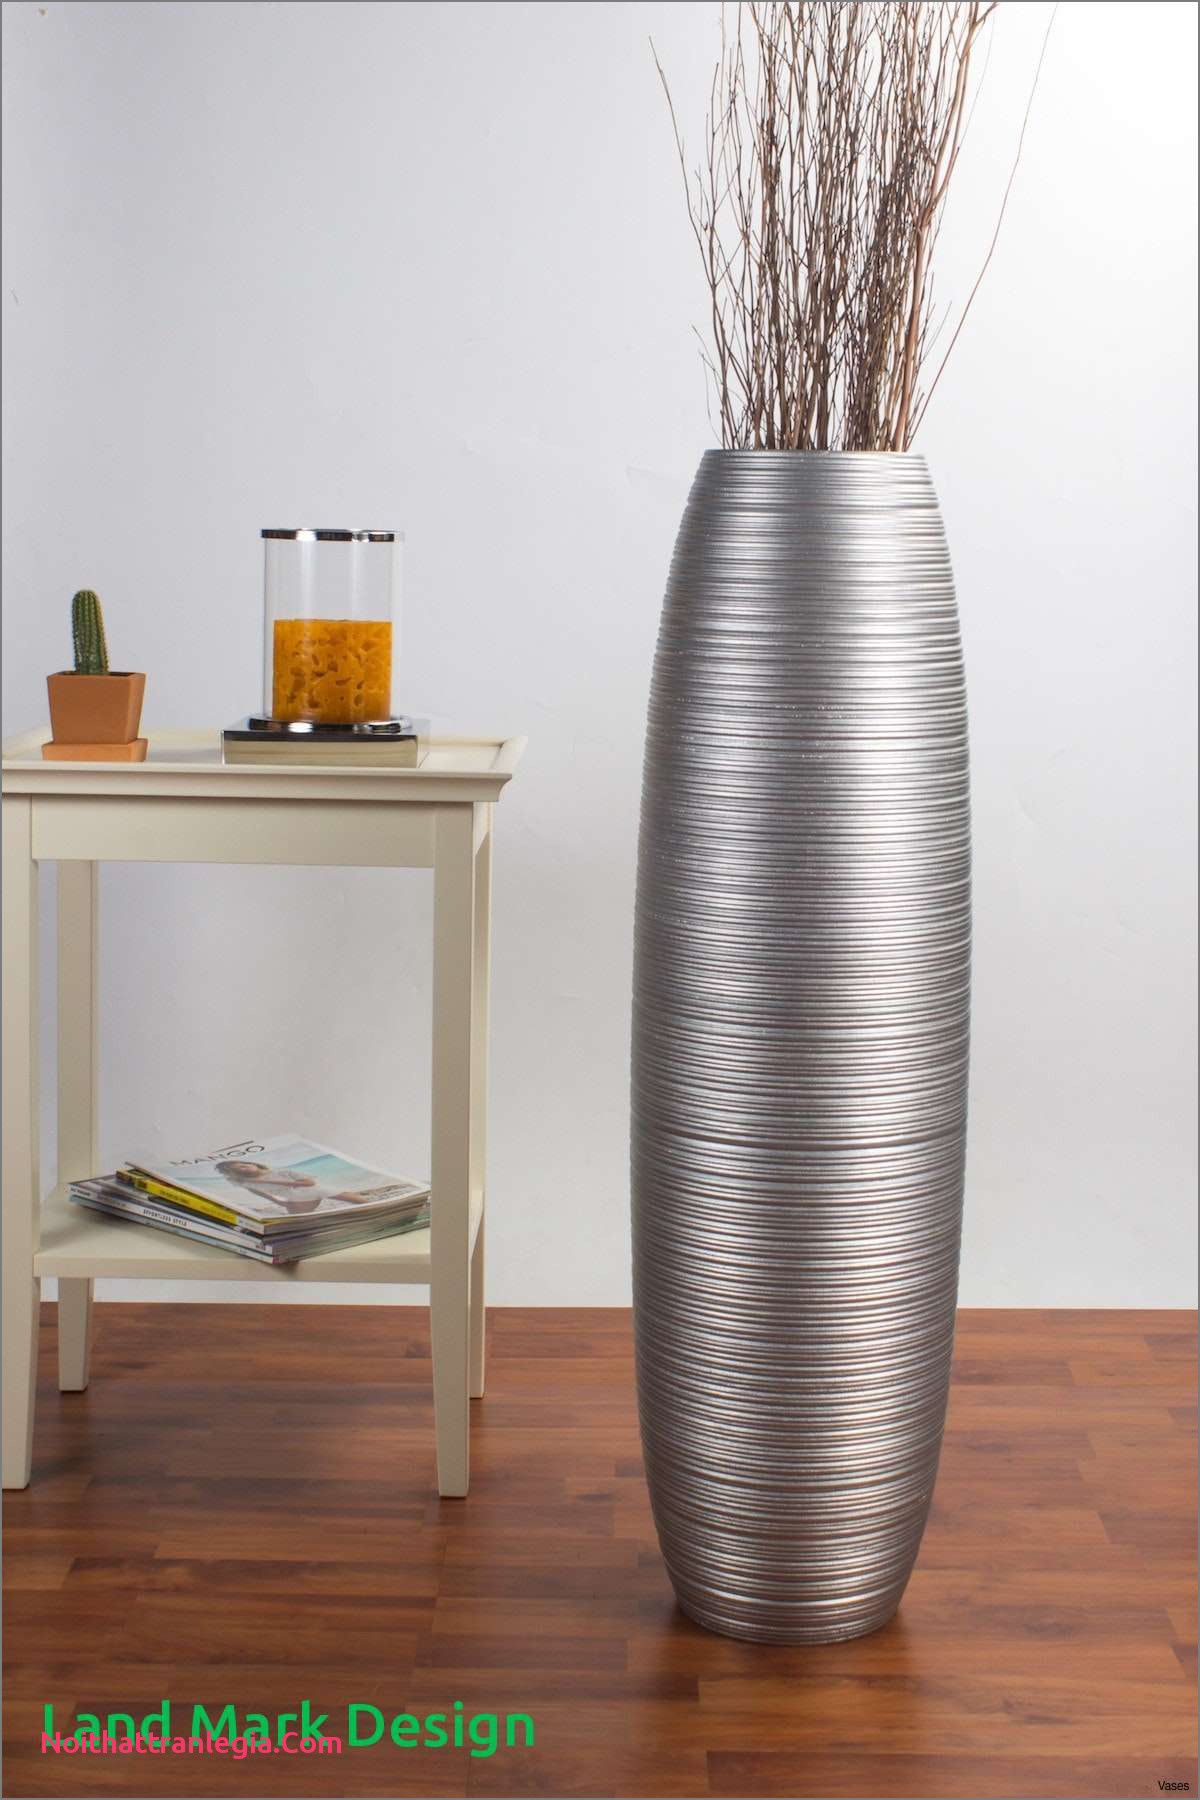 galvanized metal vases wholesale of 20 large floor vase nz noithattranlegia vases design throughout d dkbrw 5743 1h vases 36 floor vase i 0d